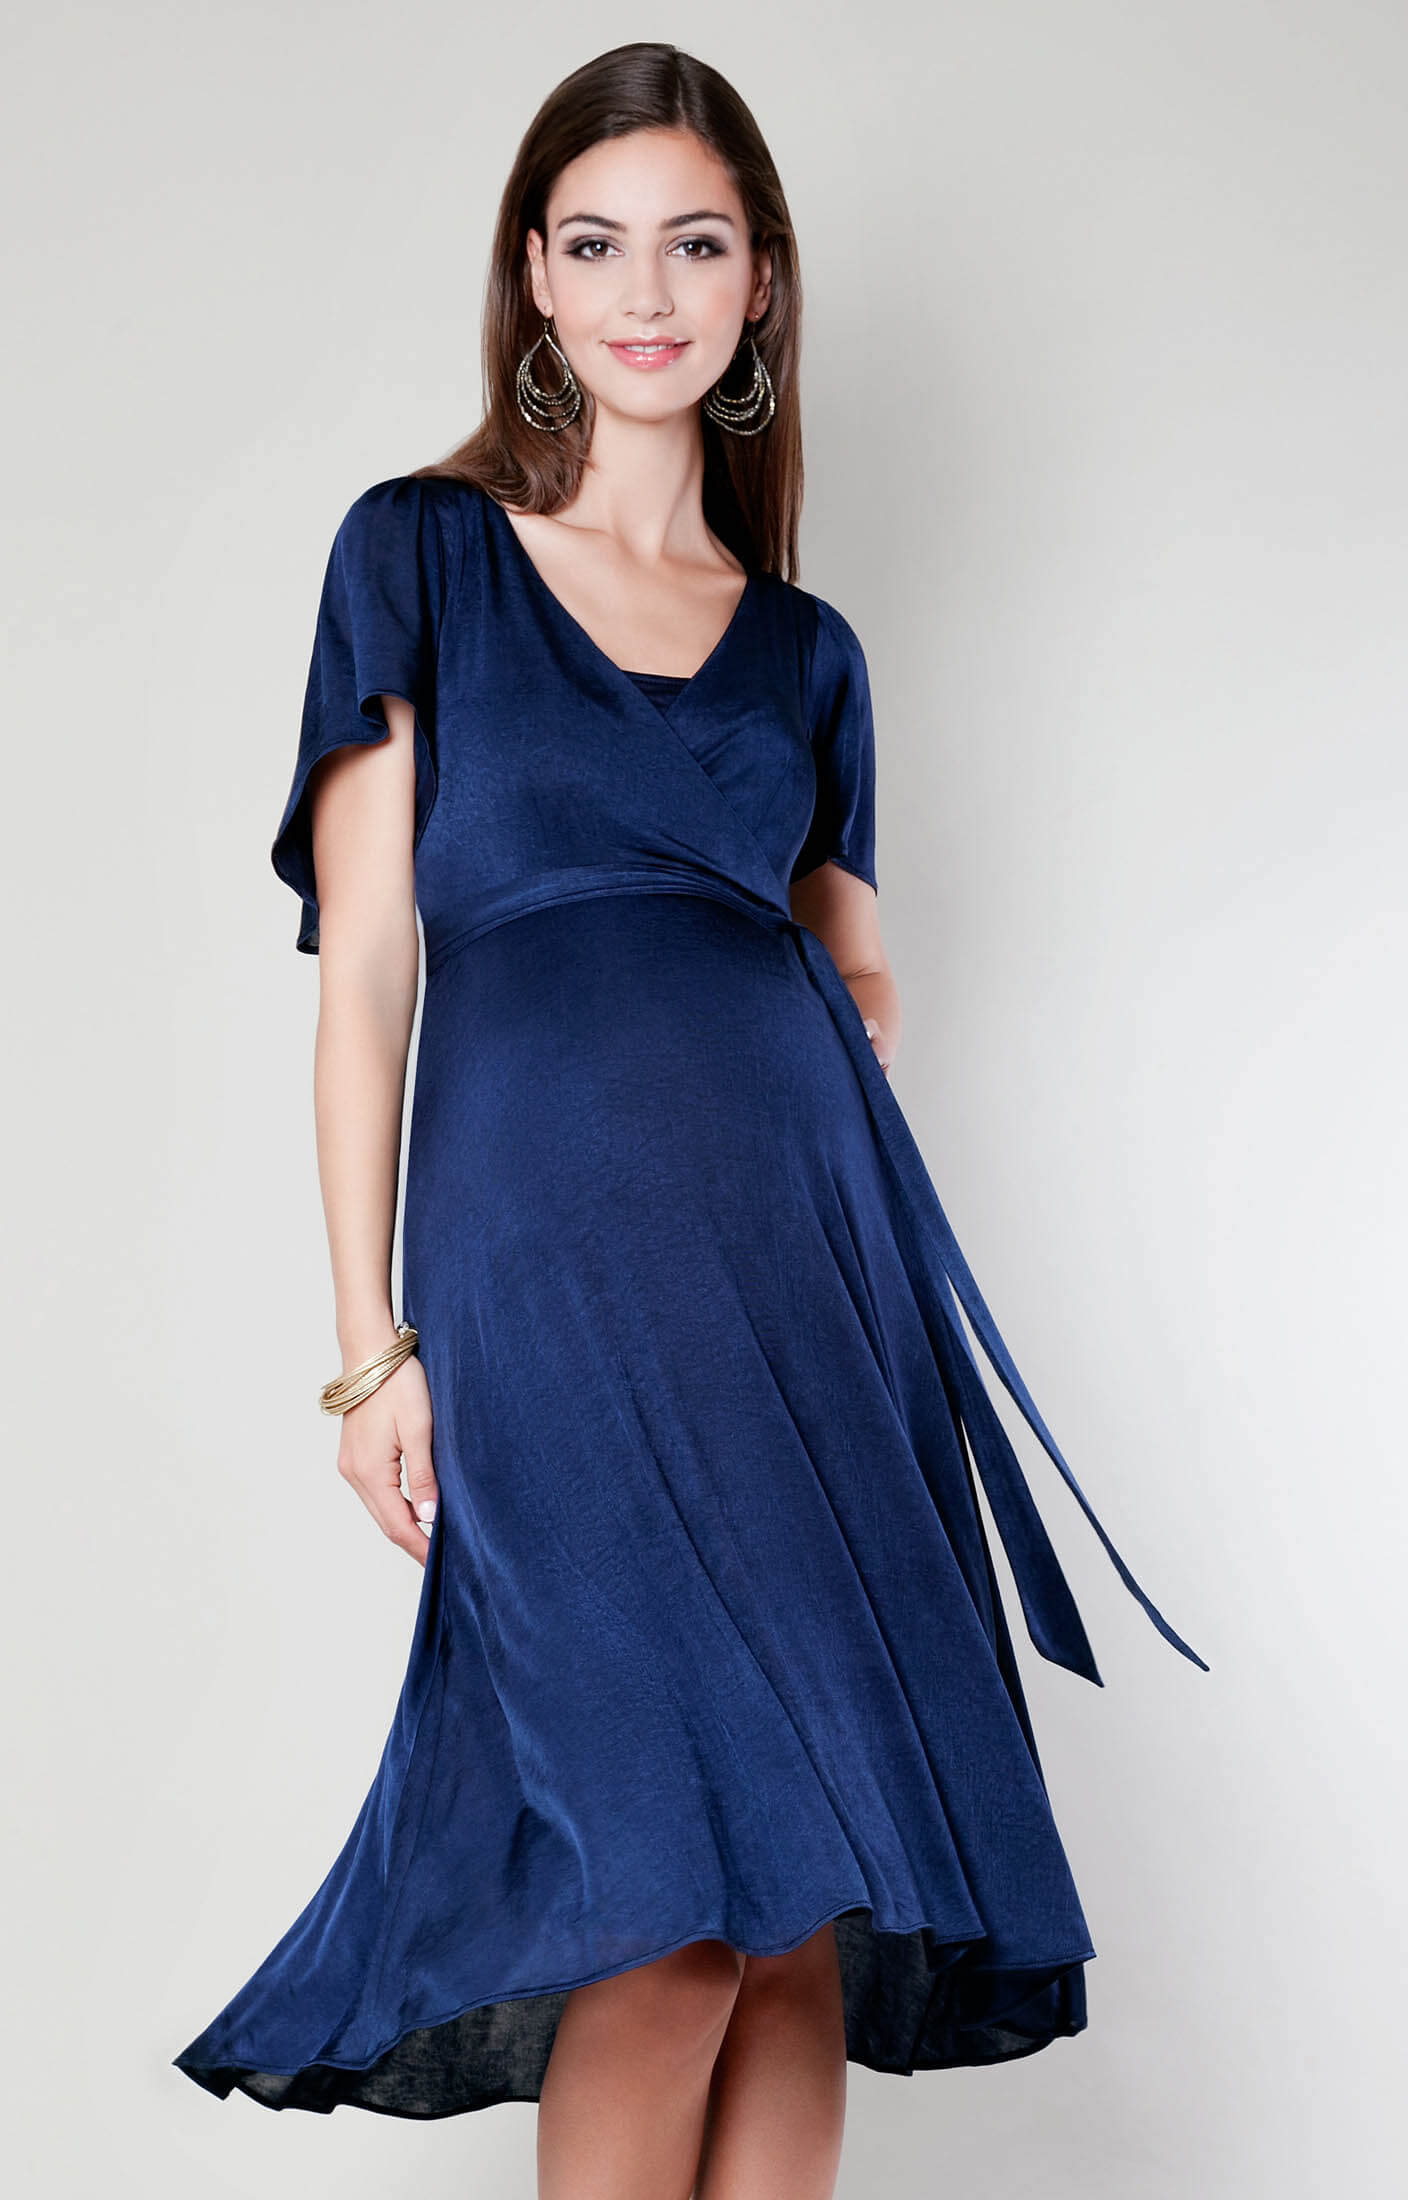 Cocoon nursing dress velvet blue maternity wedding dresses cocoon nursing dress velvet blue by tiffany rose ombrellifo Image collections